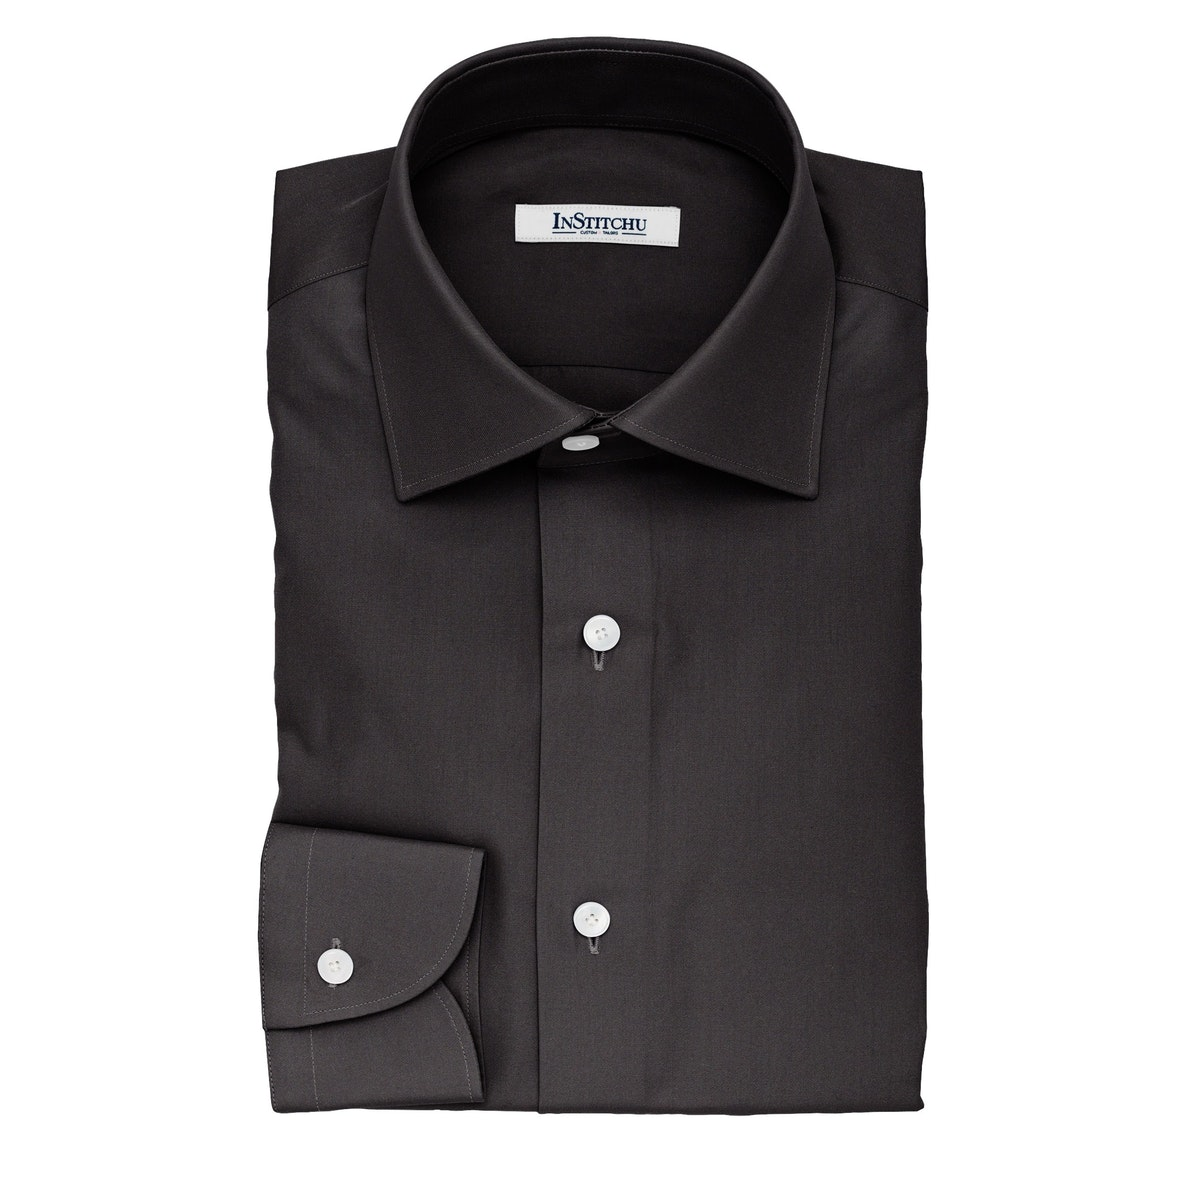 InStitchu Collection The Wallace Black Twill Cotton Shirt